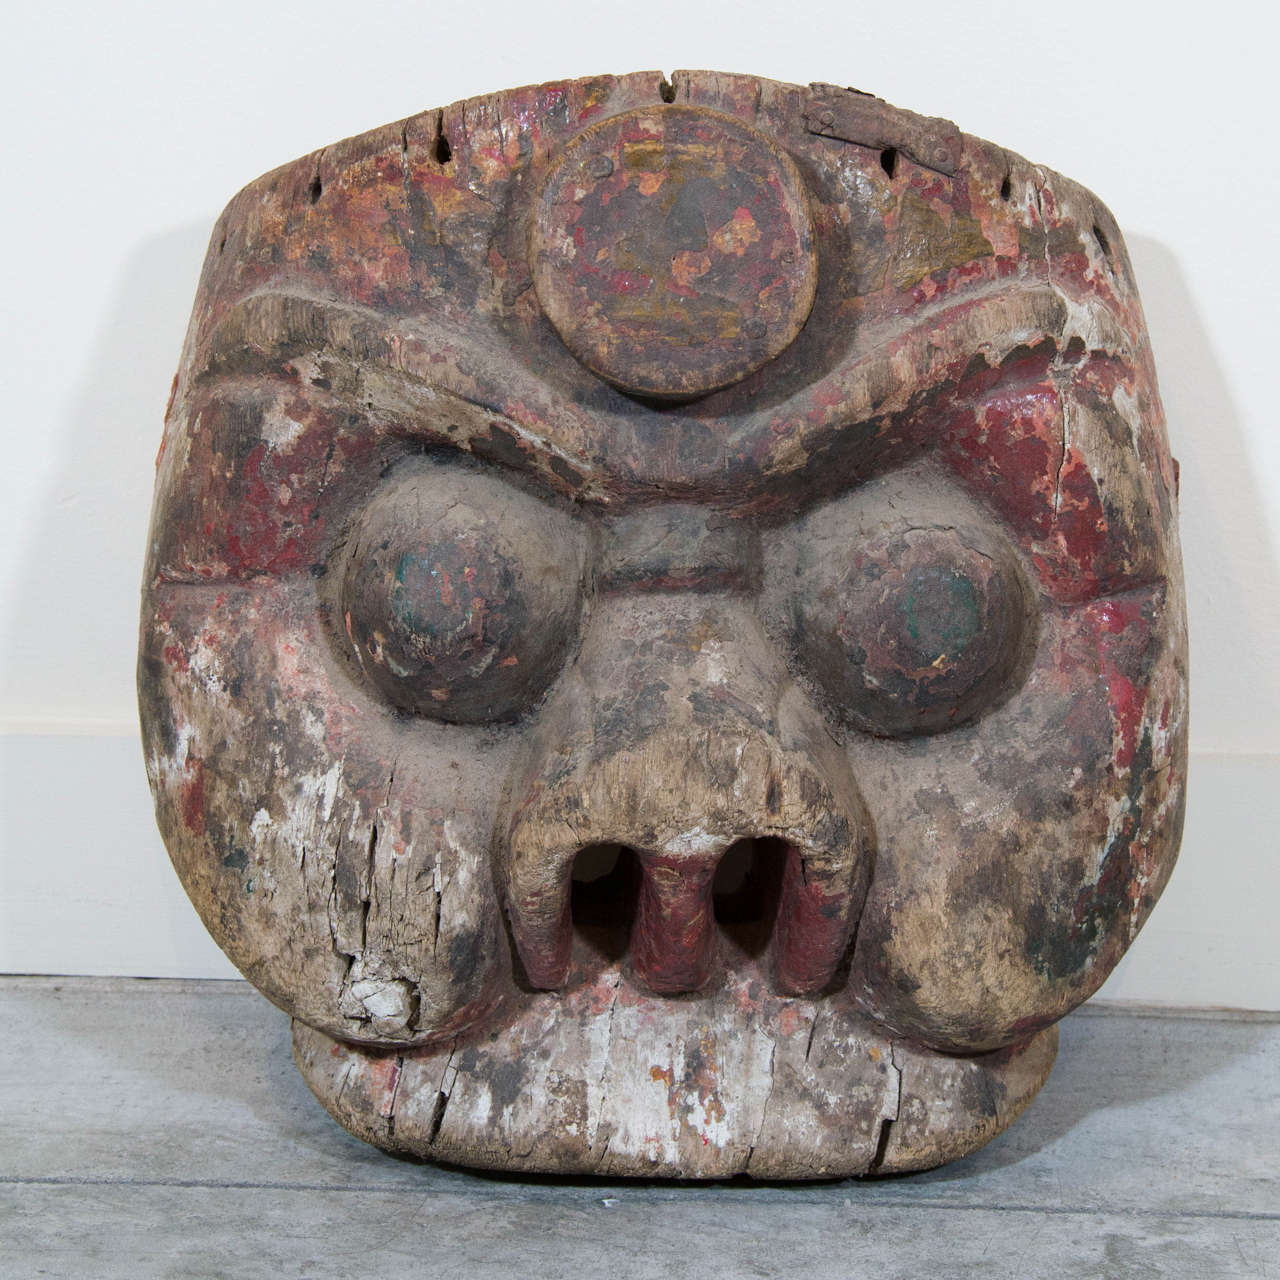 A beautifully carved early 19th Century Chinese mask with traces of original color. From Hunan Province.